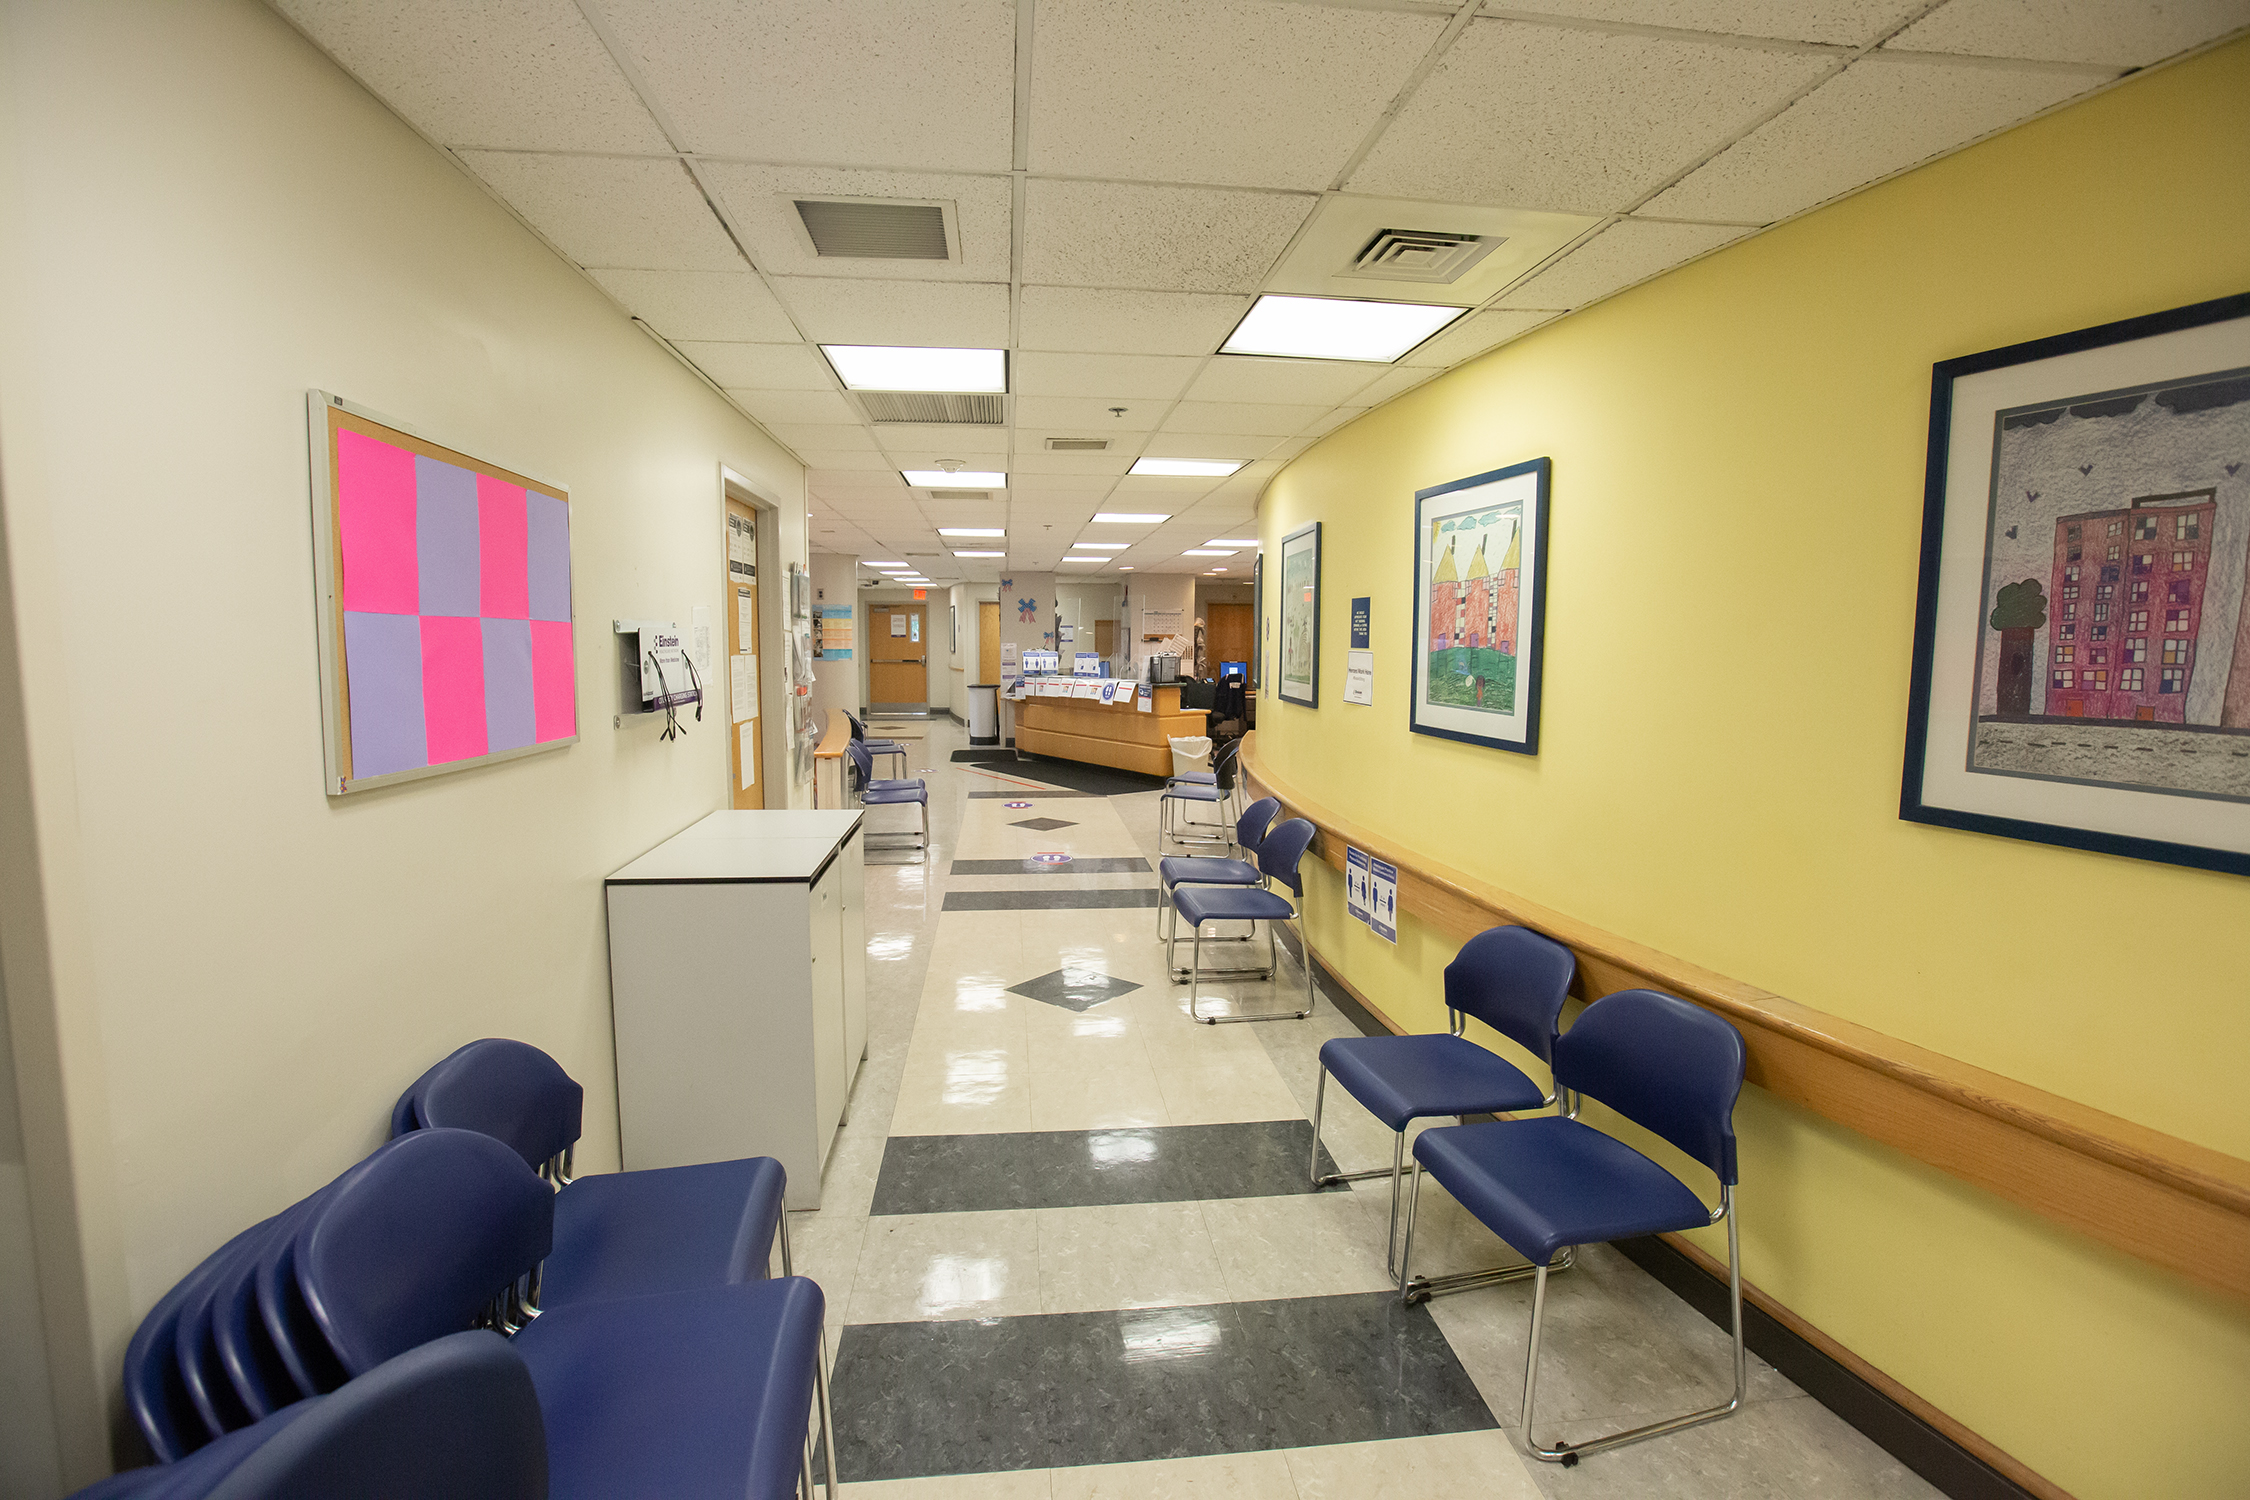 image of Pediatrics department